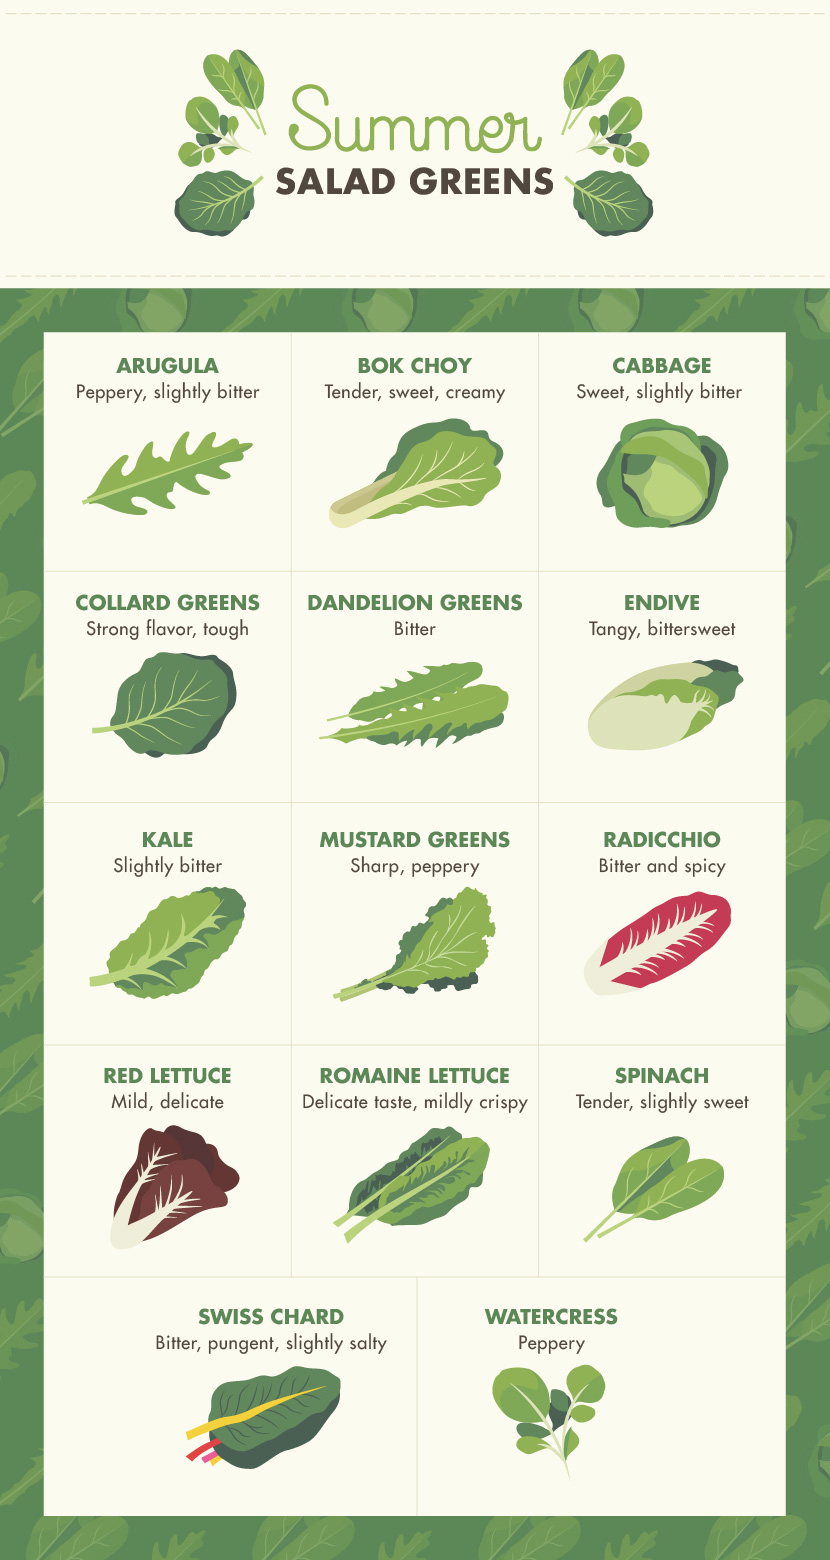 Summer Salad Greens